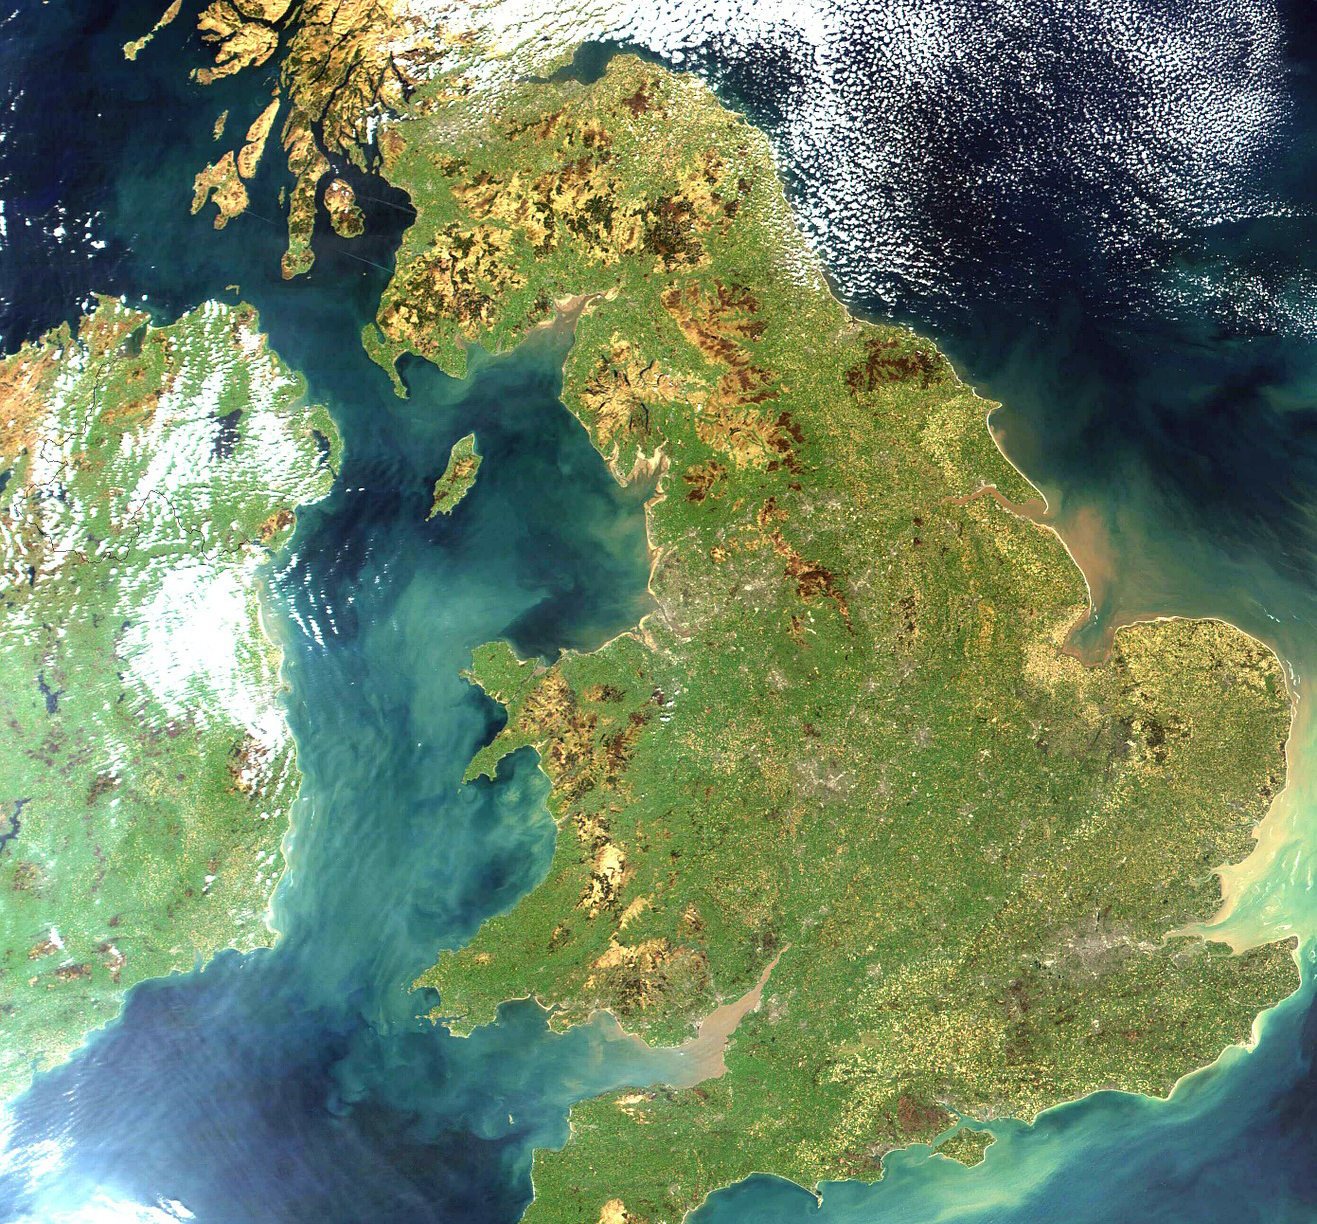 data mapping with Usgs Earth Explorer Download Free Landsat Imagery on Donegal moreover Babcock together with mercial Drone Hardware And Services Revenue To Reach 12 6 Billion By 2025 besides Think Wow moreover Zachman Framework.